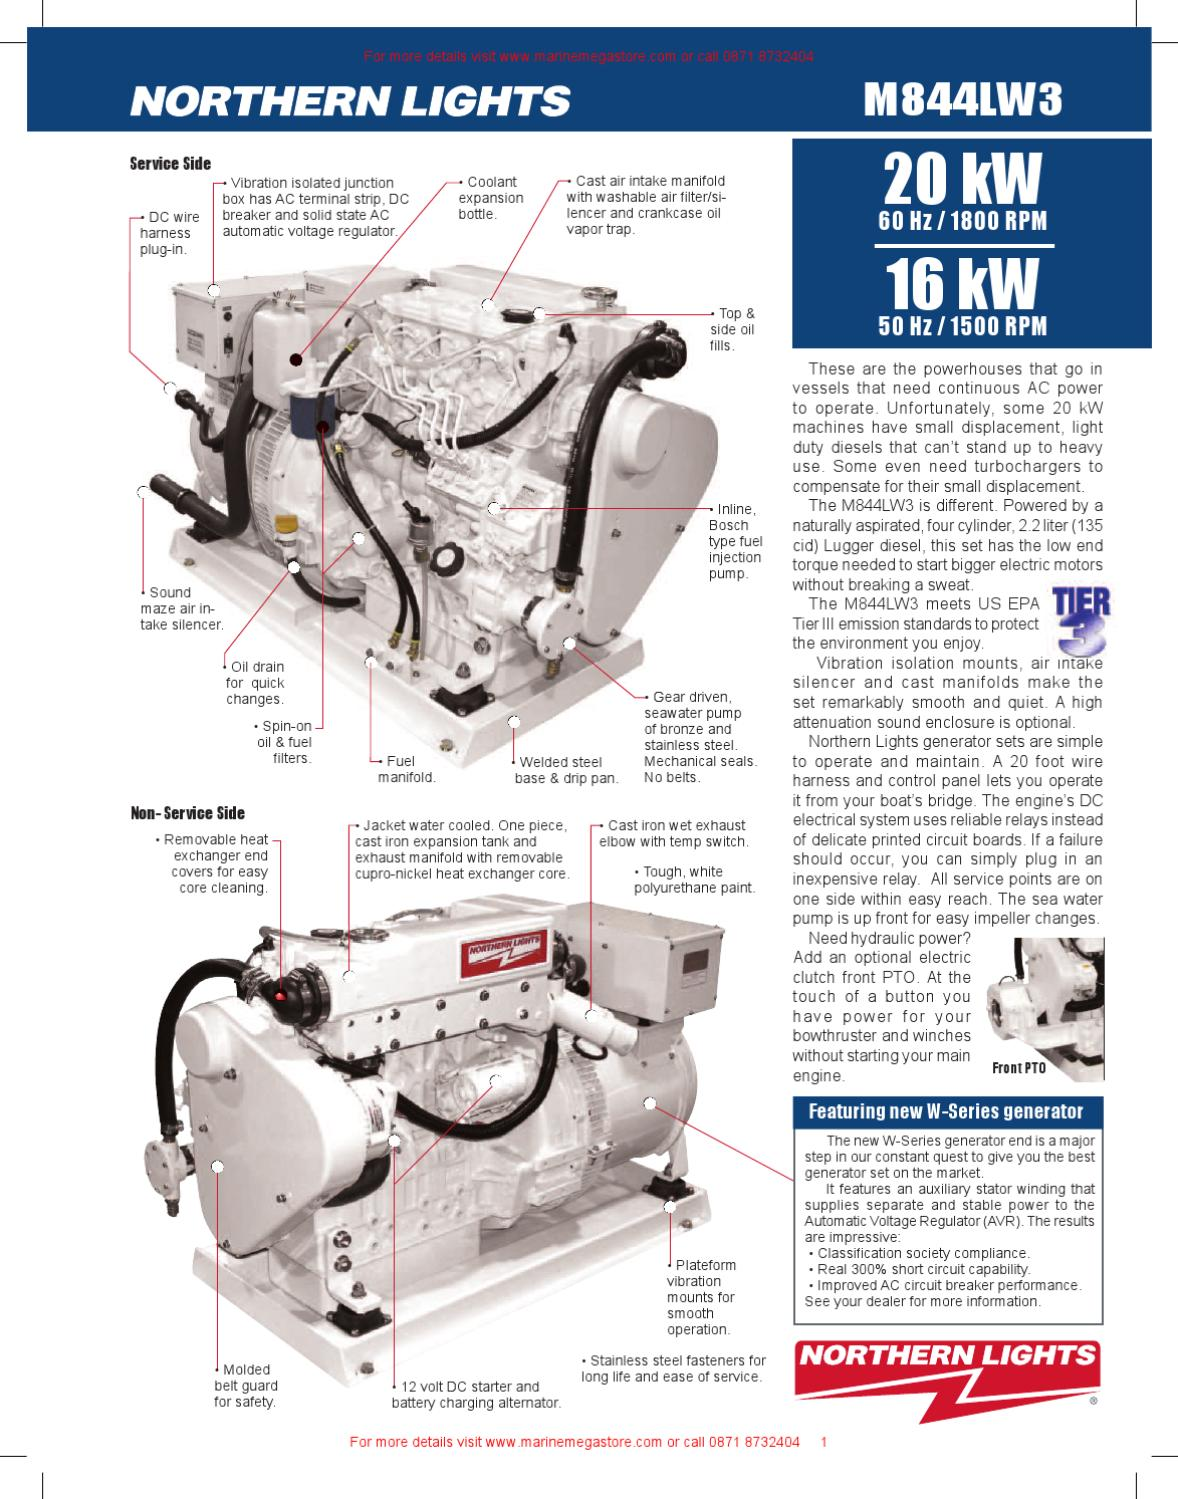 Northern Lights- M844LW3 20-16 kW Northern Lights marine generator